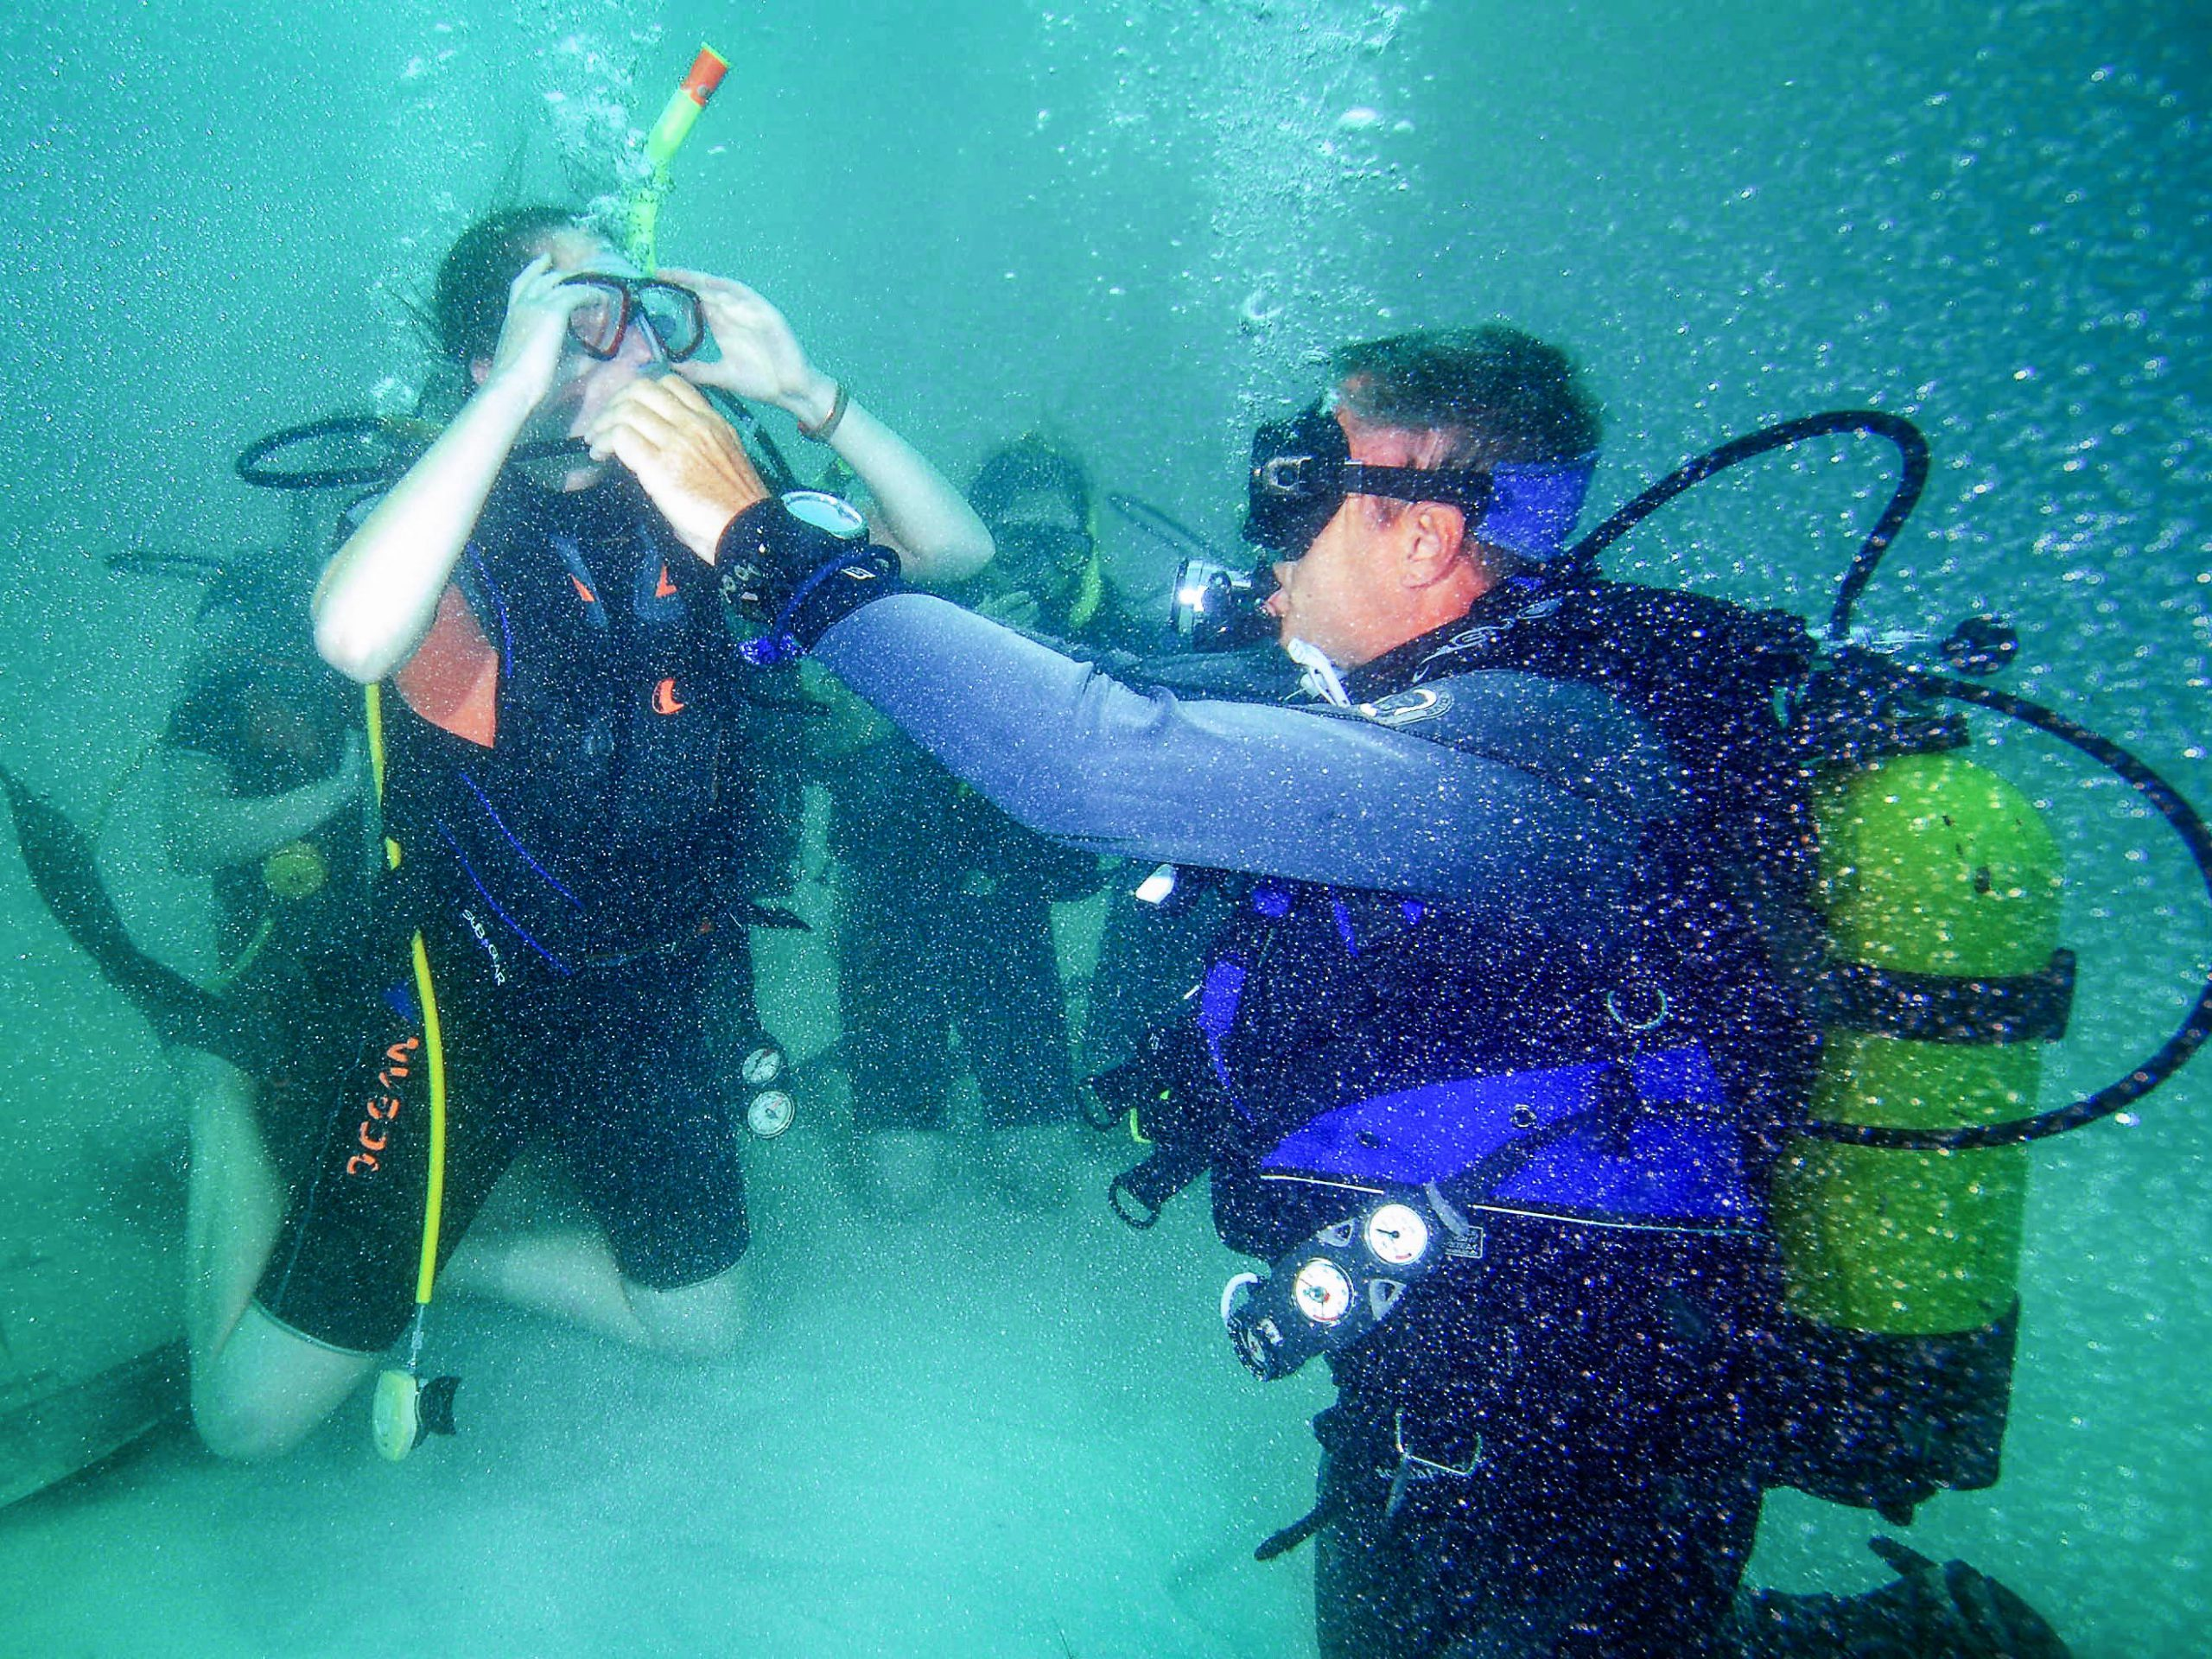 camps_international_scuba_diving_safety_guide